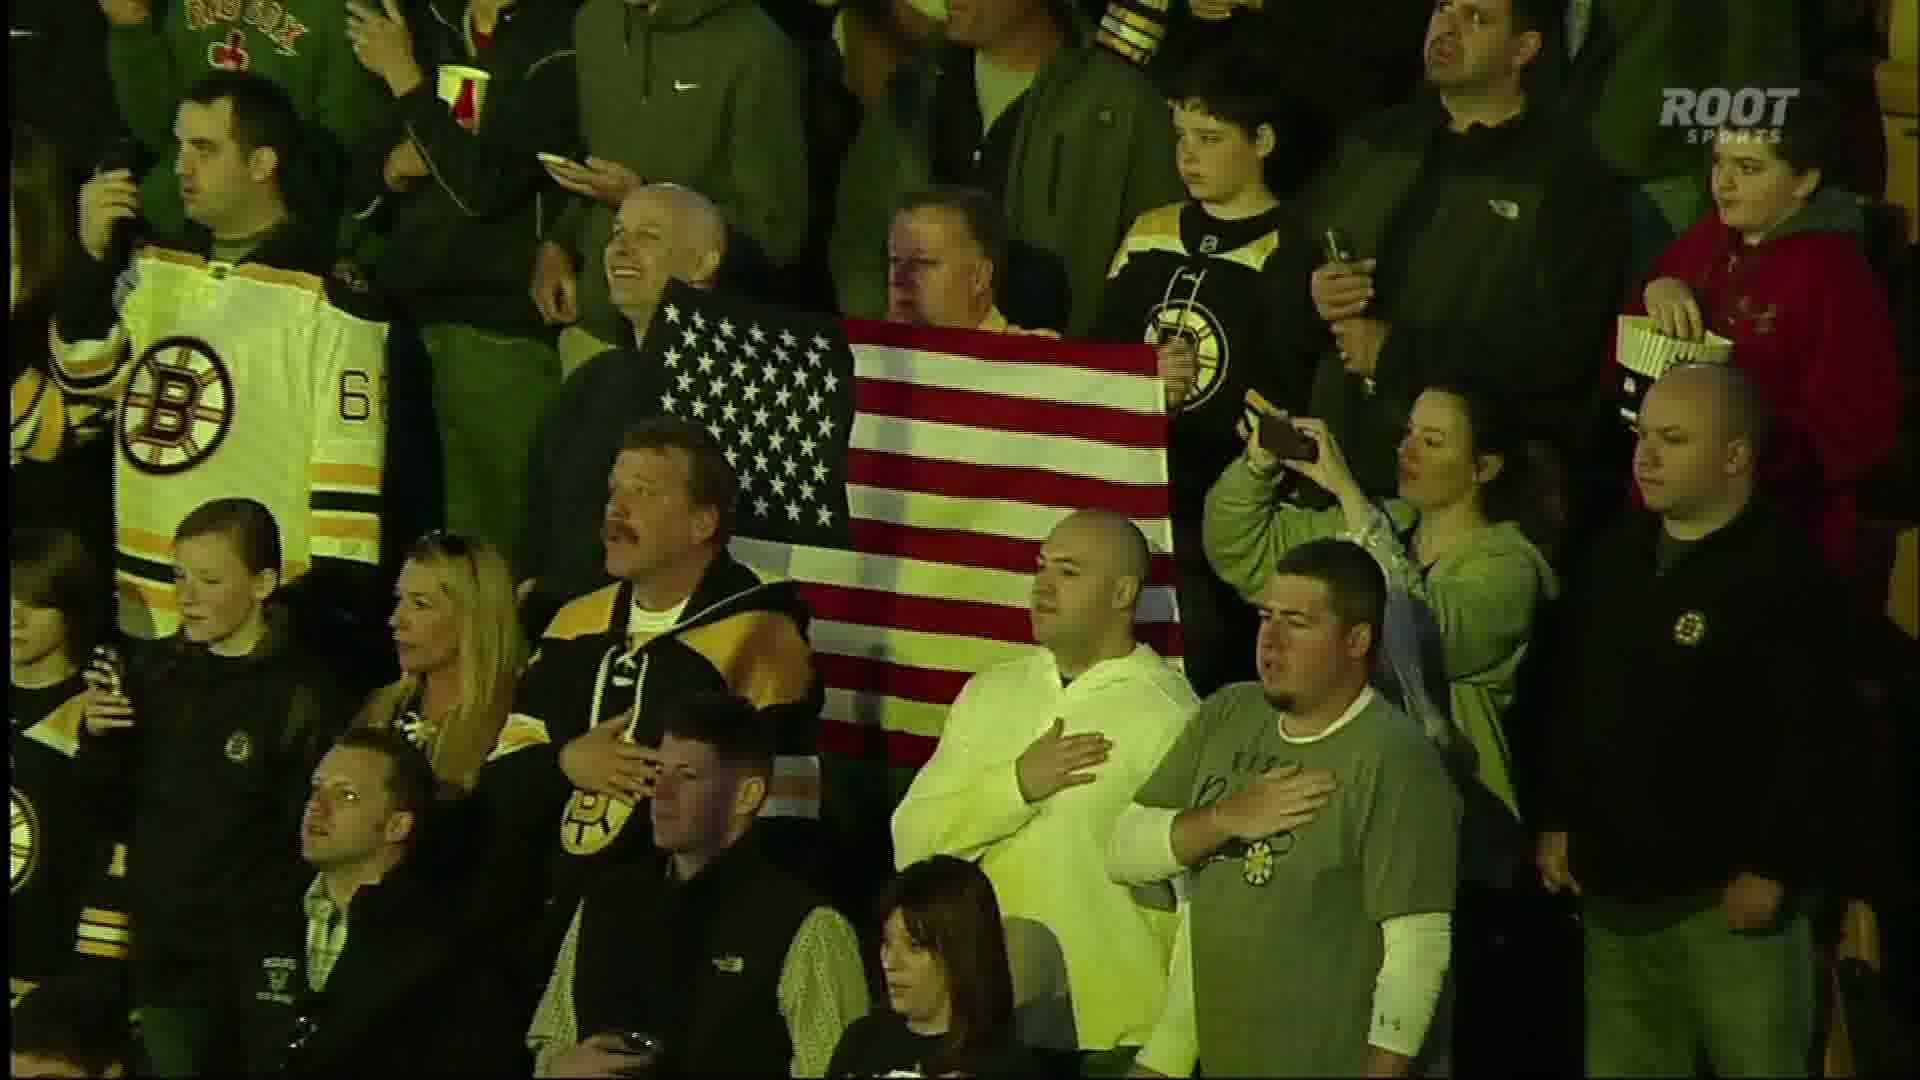 Boston Bruins fans sing the national anthem before a game against the Penguins. The game was postponed while police searched for a Boston Marathon bombing suspect.